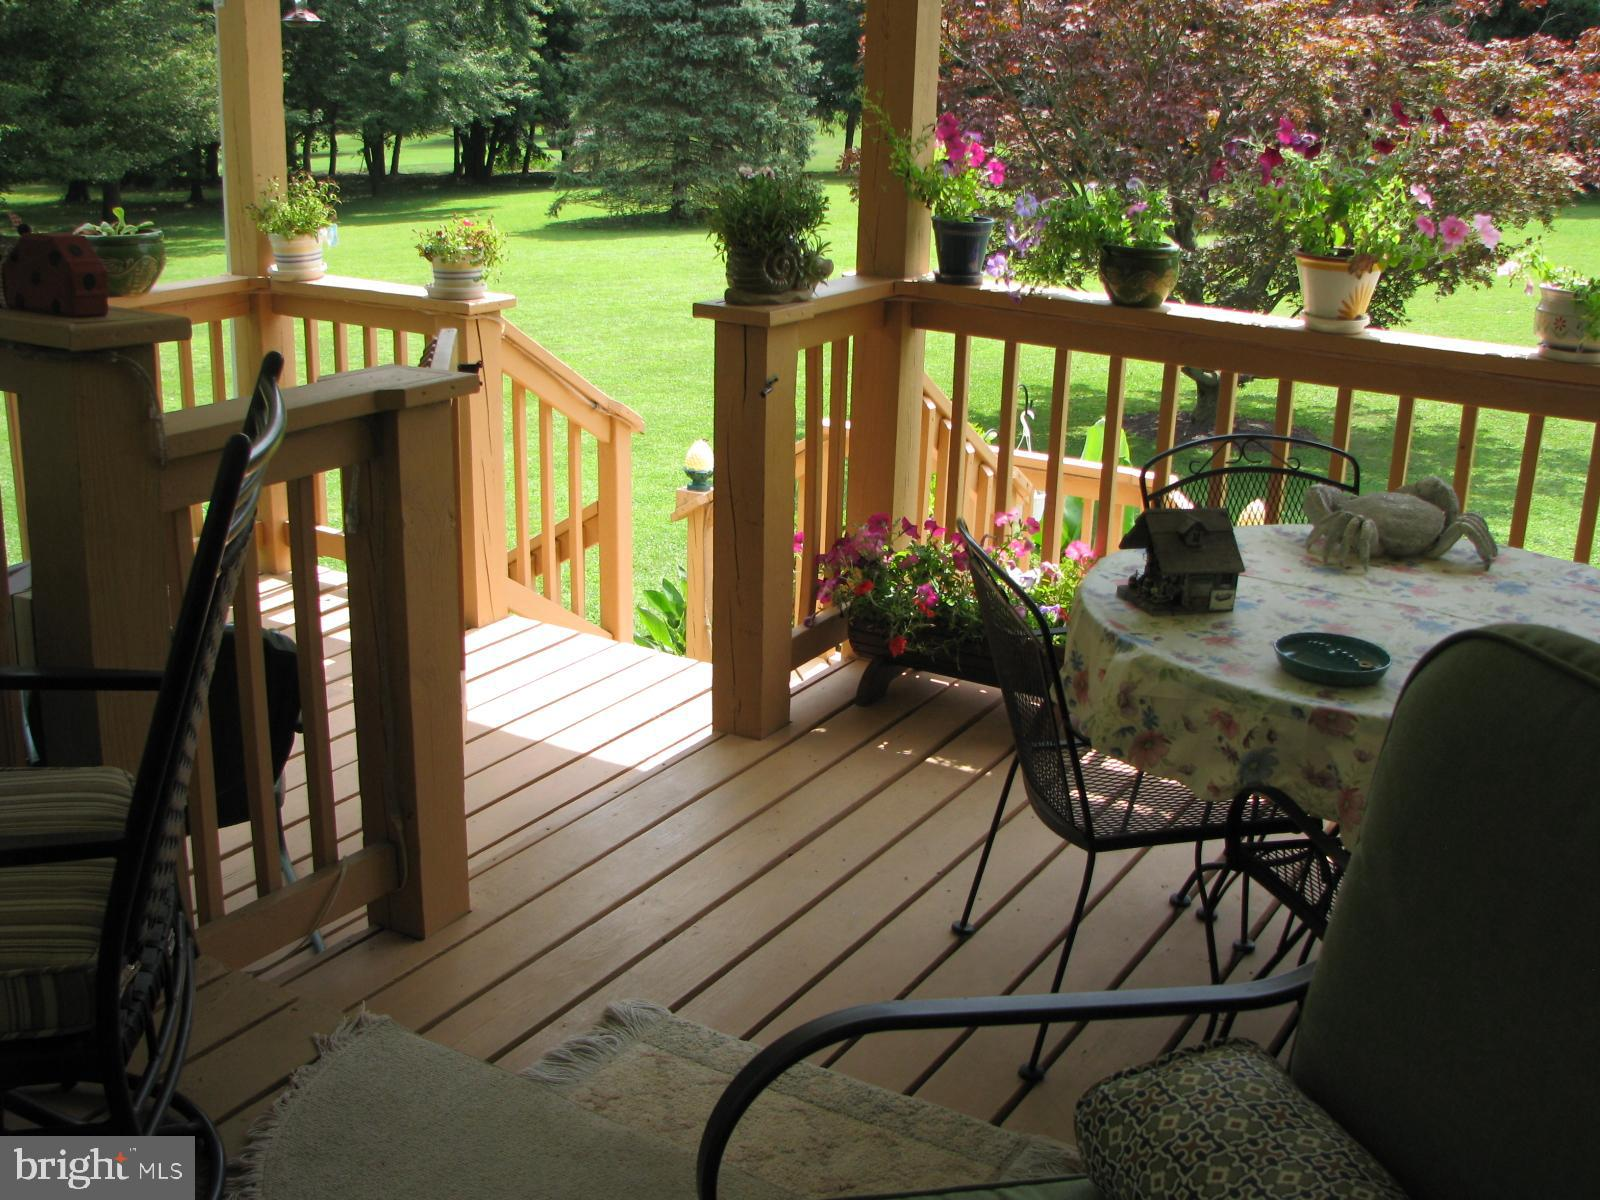 2ND LEVEL OF DECK